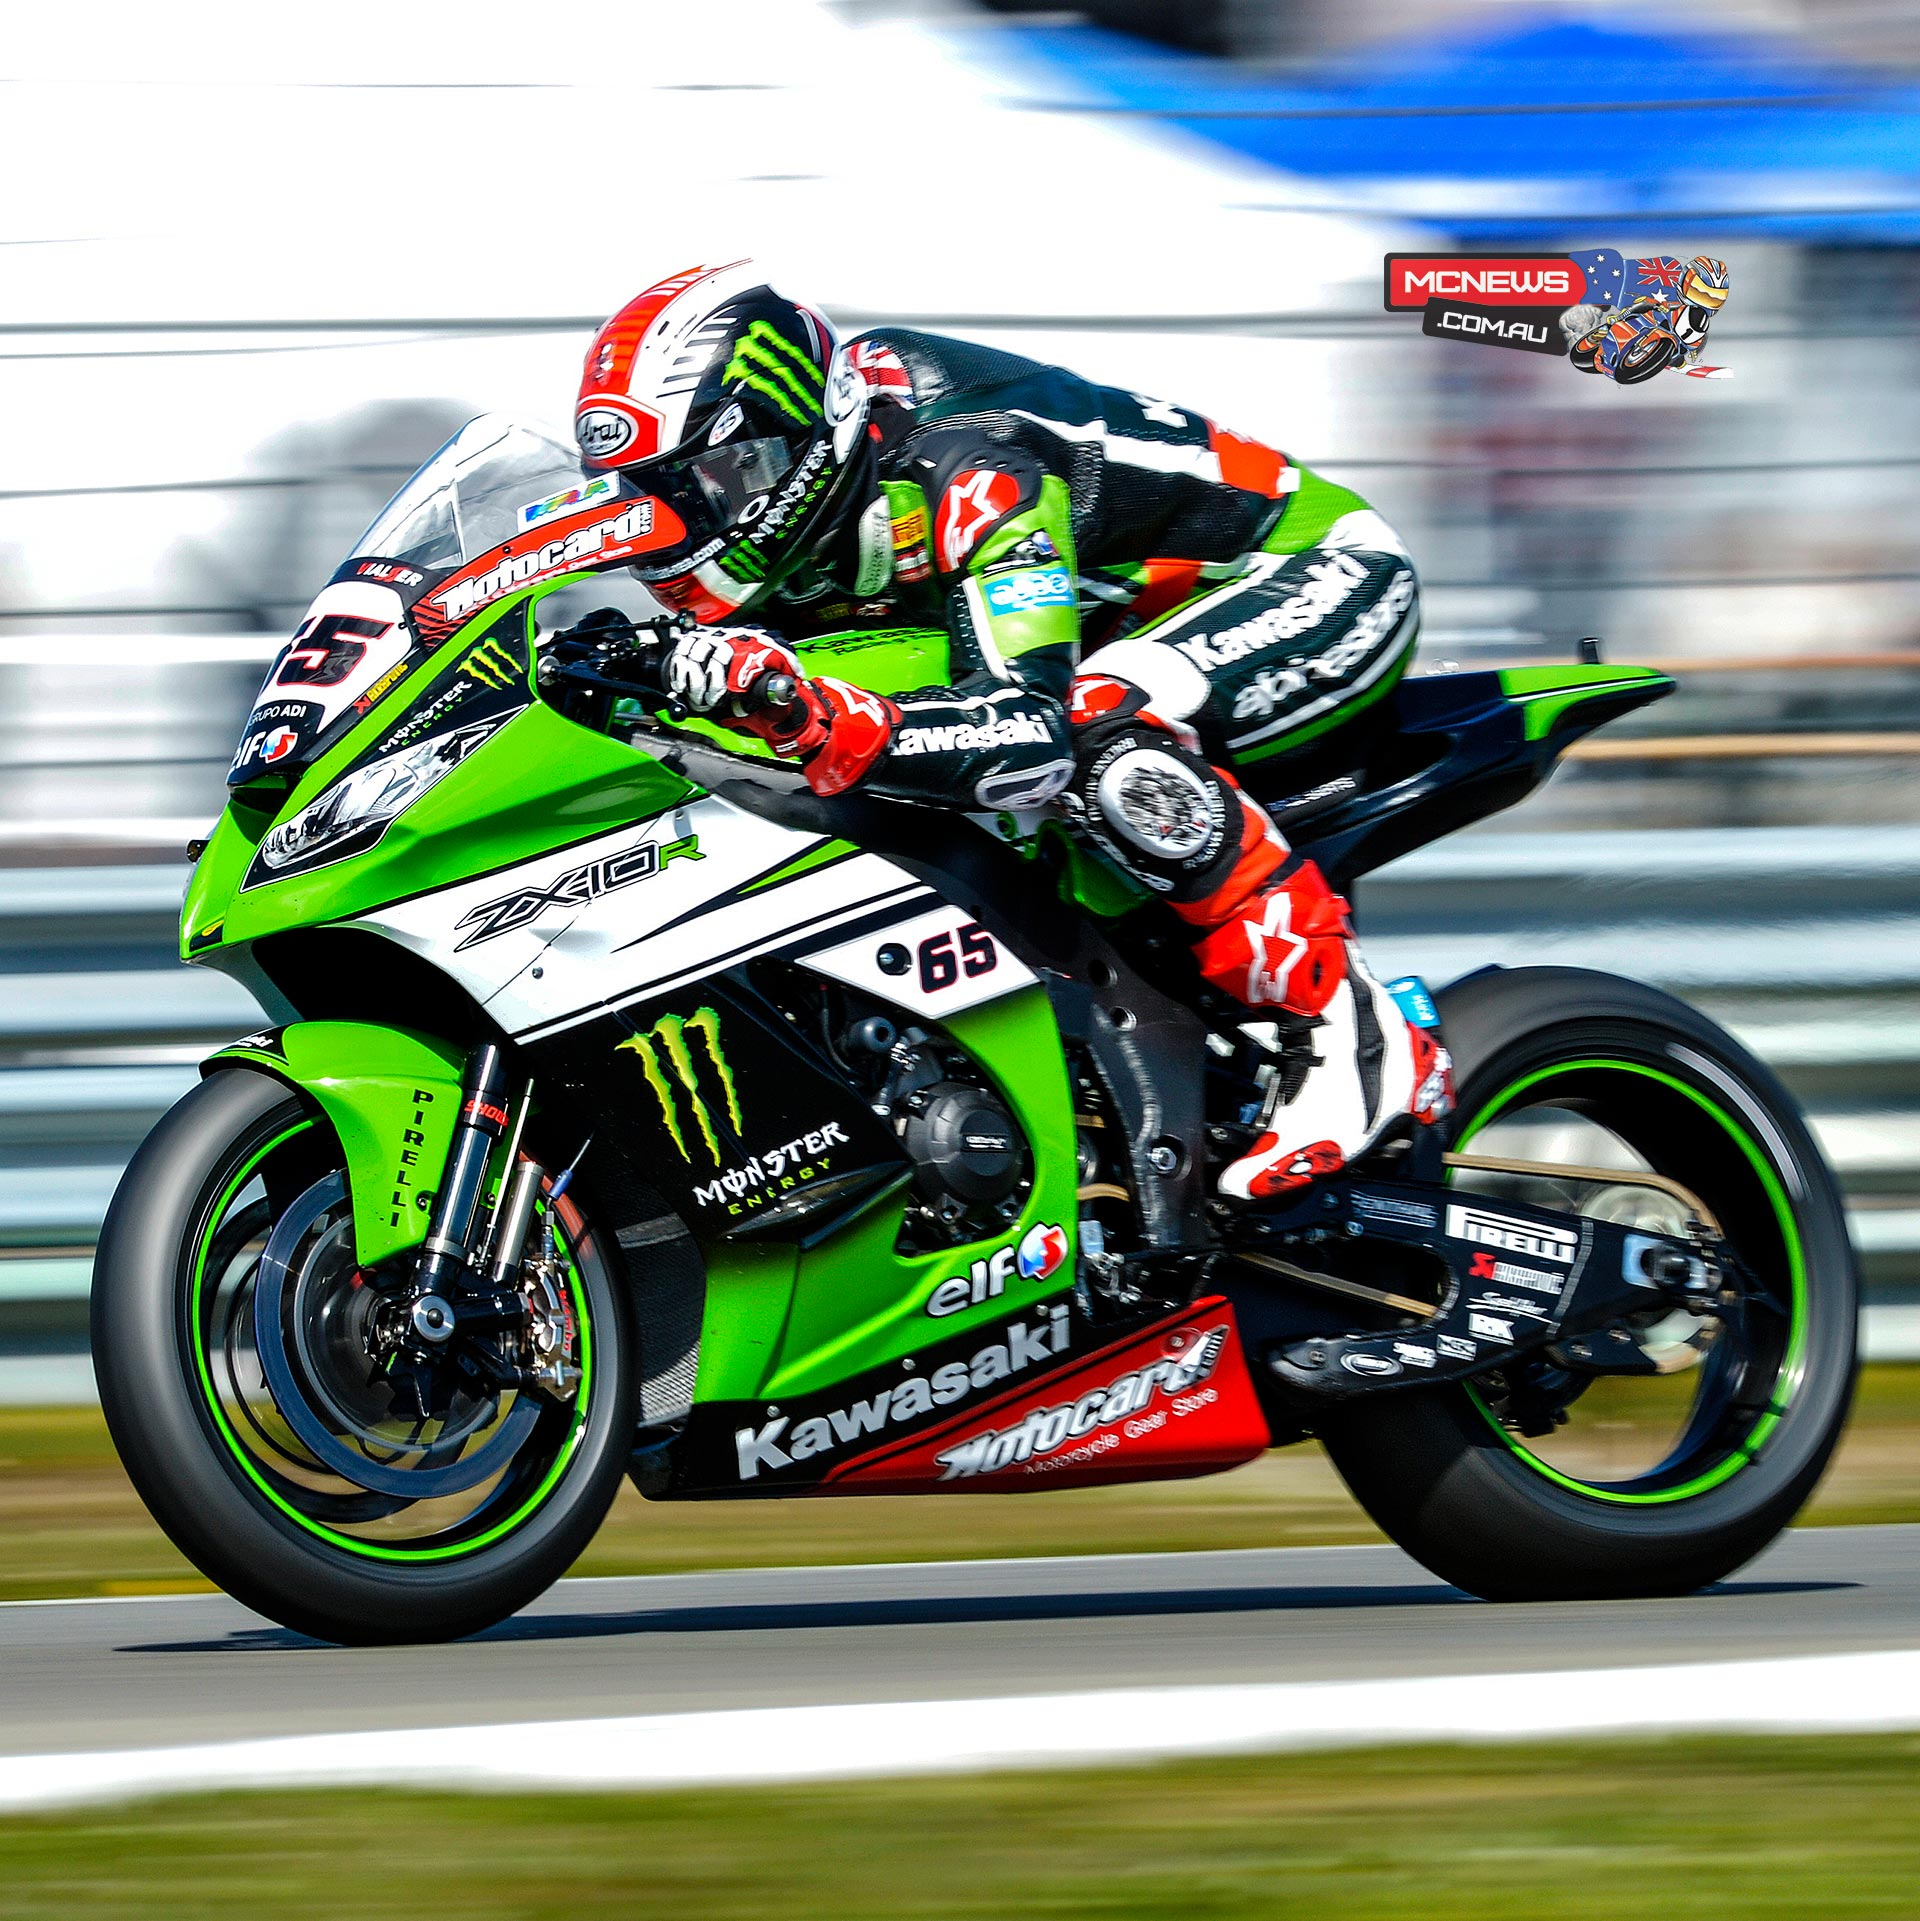 Jonathan Rea has been dominant on the Kawasaki ZX-10R in WorldSBK season 2015